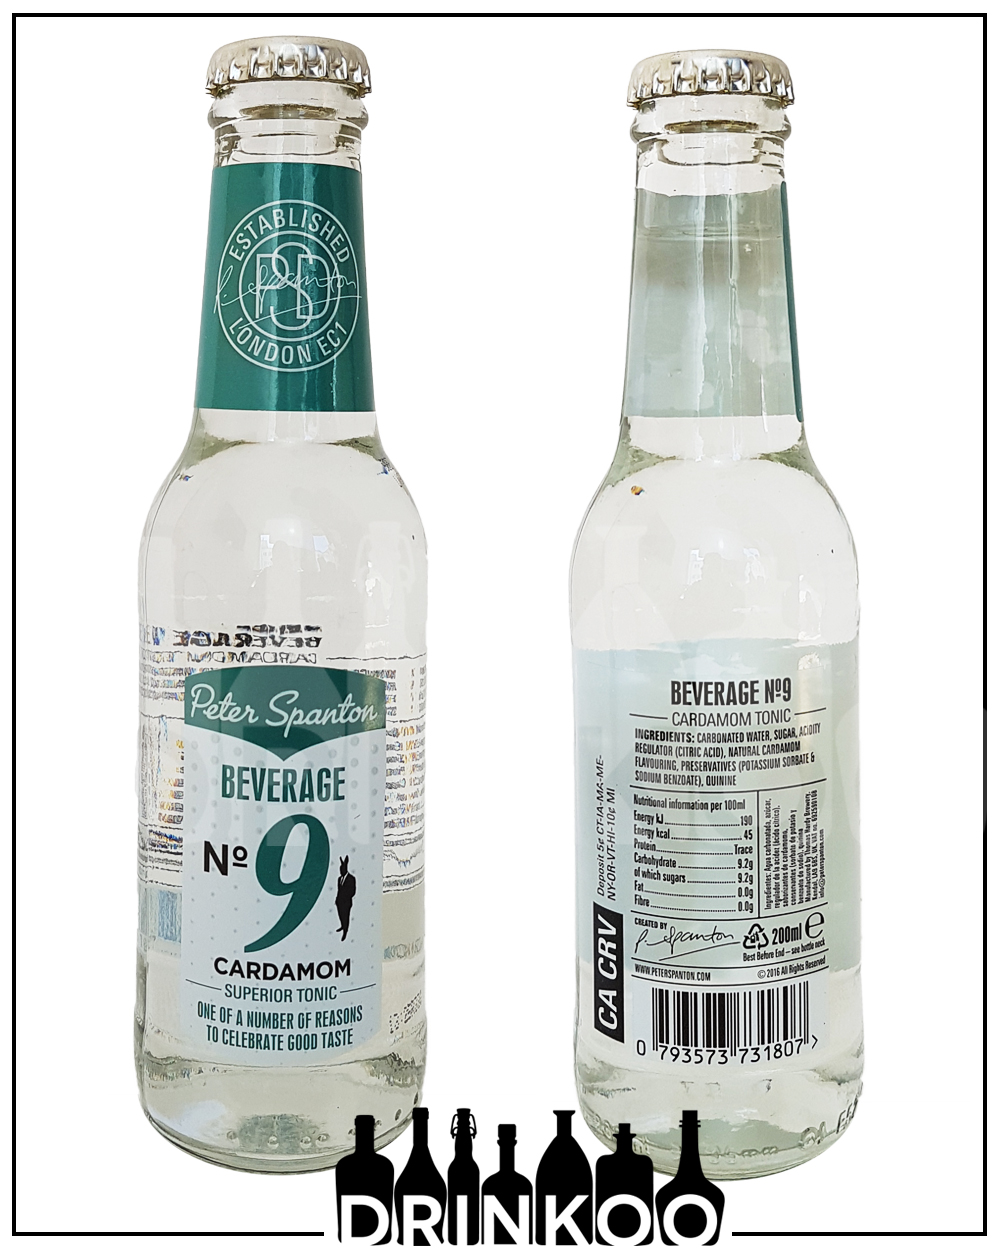 Peter Spanton Beverage No9 Cardamom Tonic Water